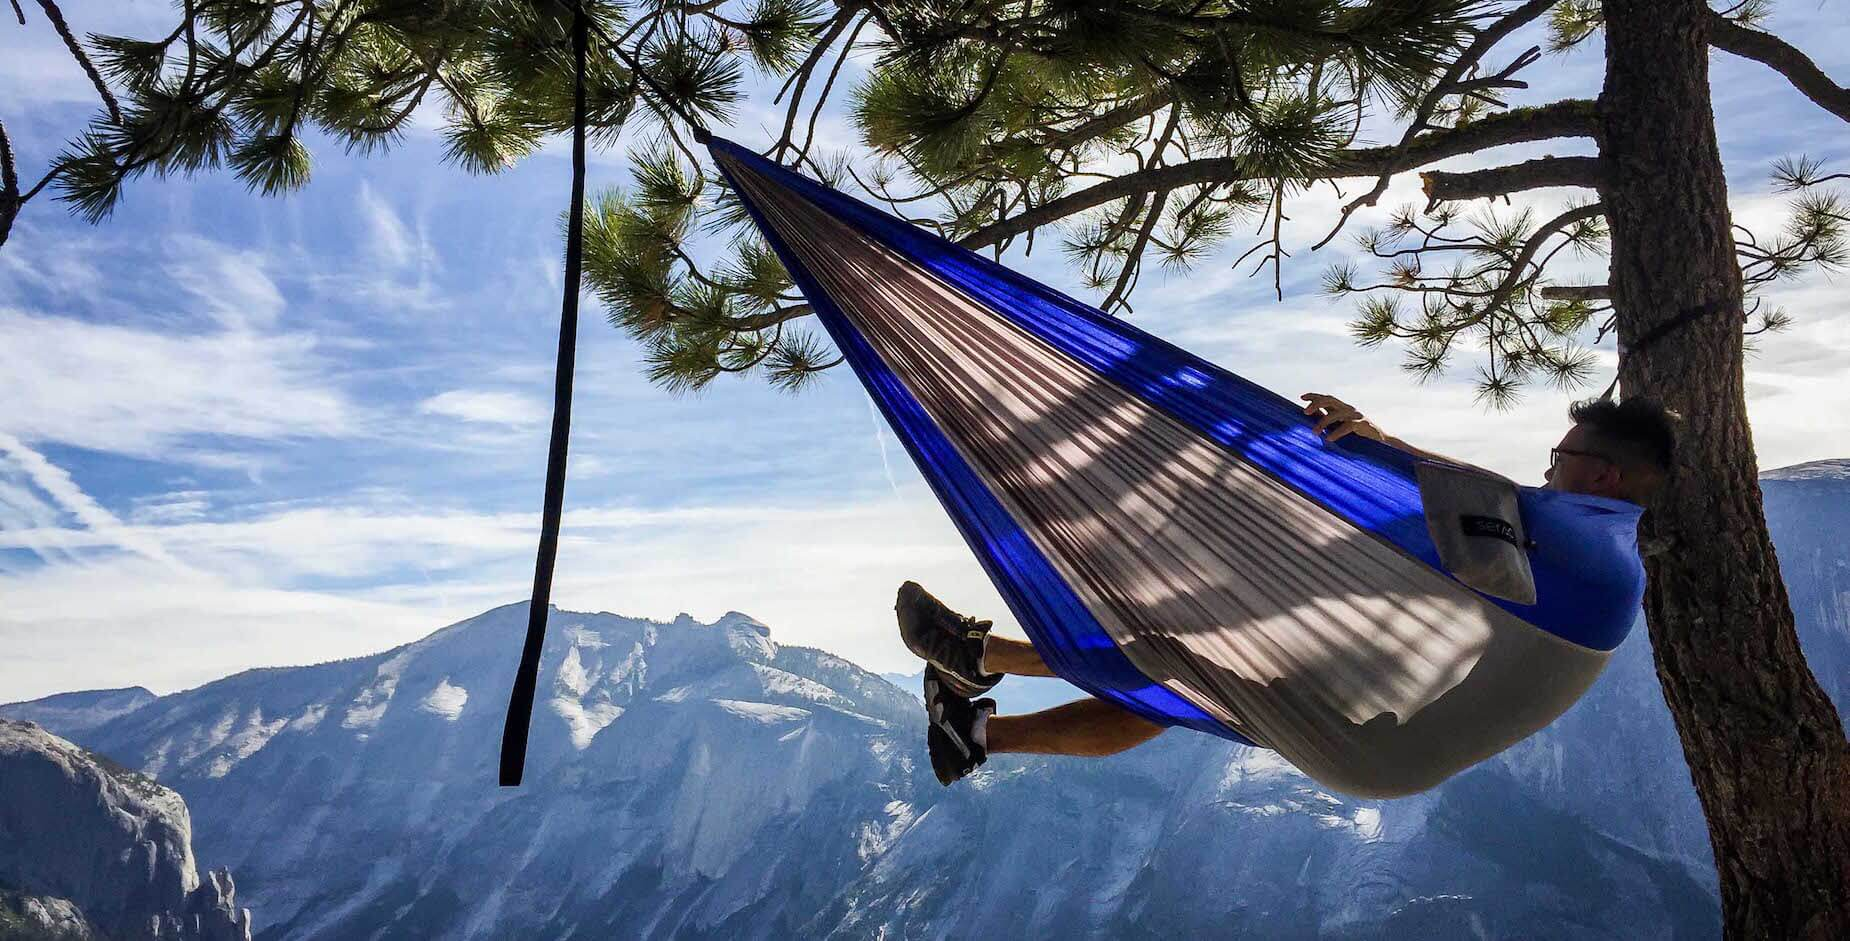 sitting in a portable serac camping hammock in yosemite. Classic model with iceberg colors